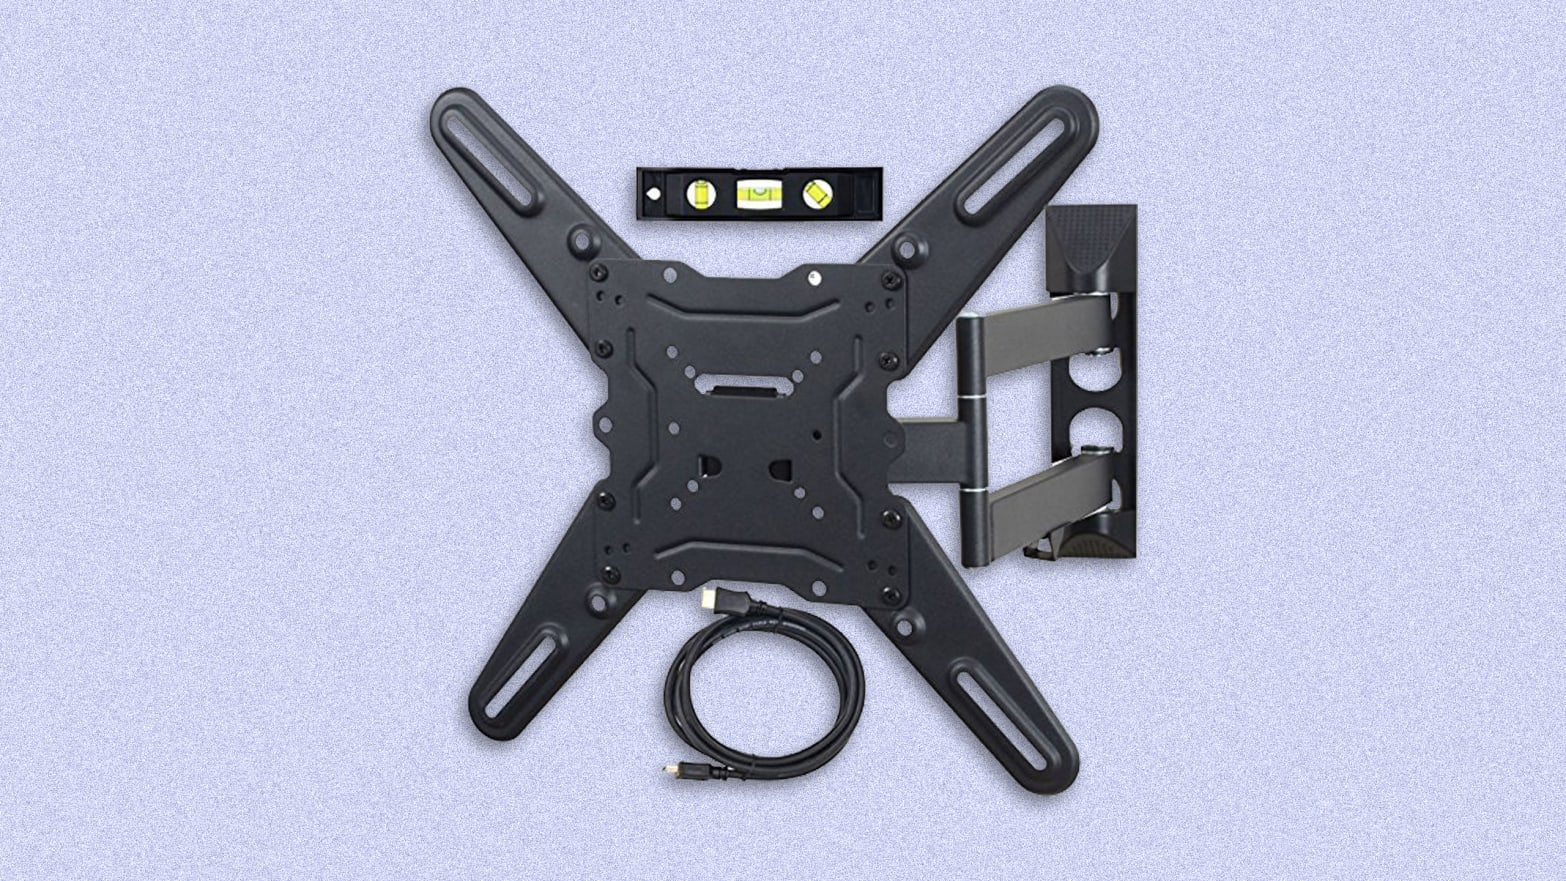 TV Wall Mount for Bedrooms or Living Rooms